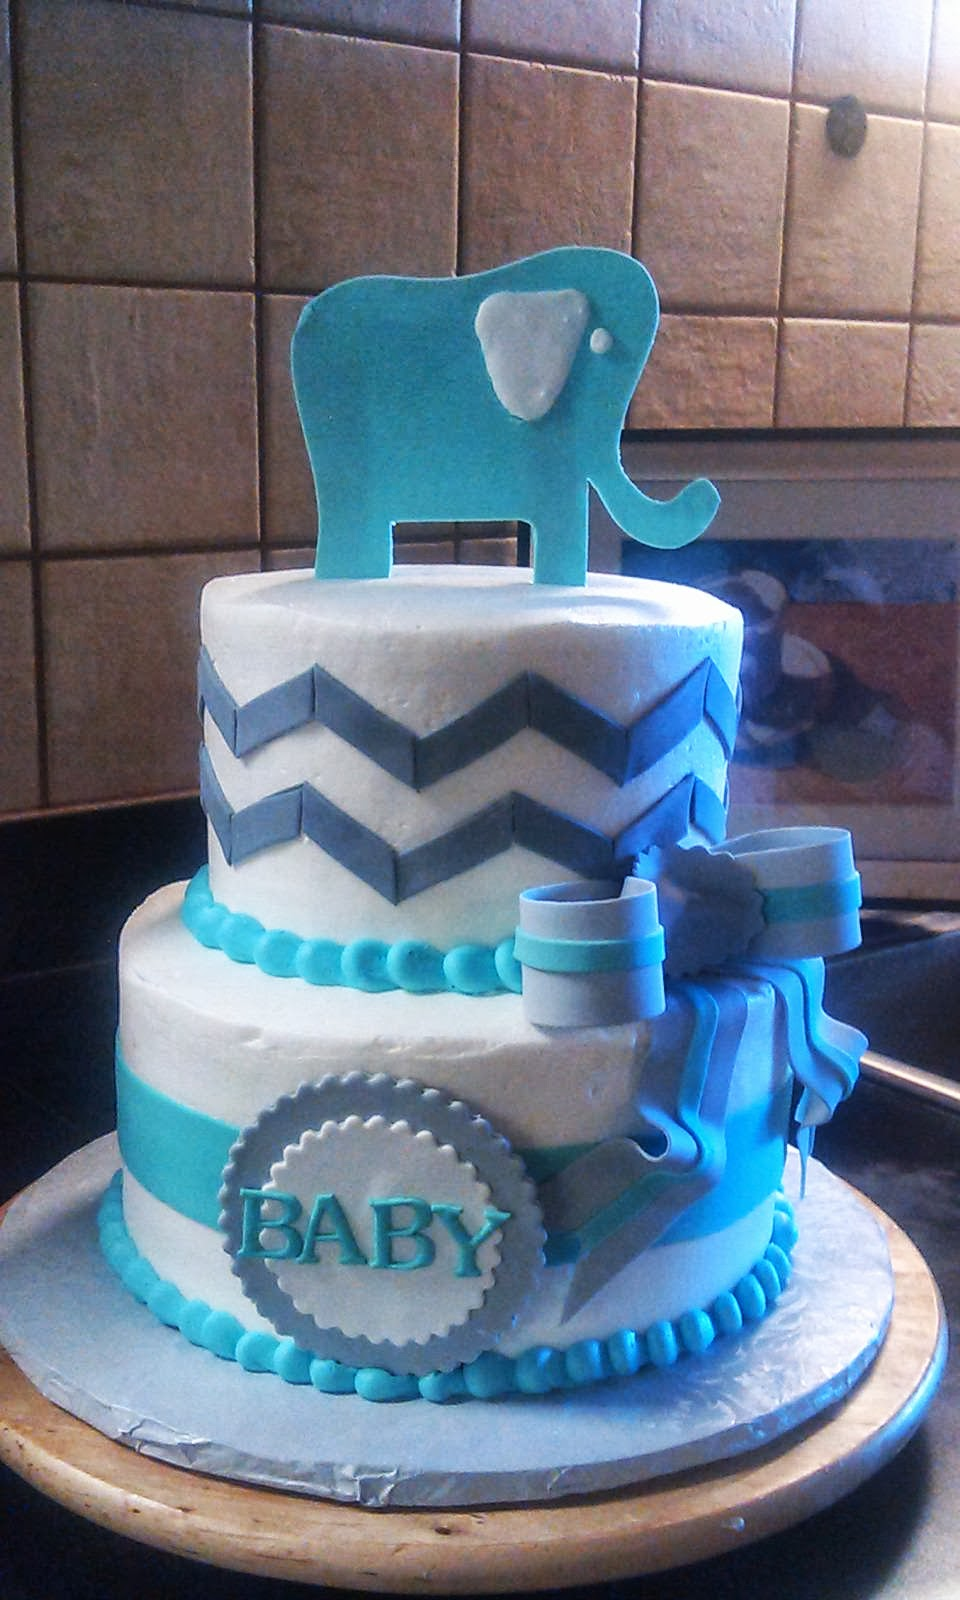 Elephant Baby Shower Cake with Chevron